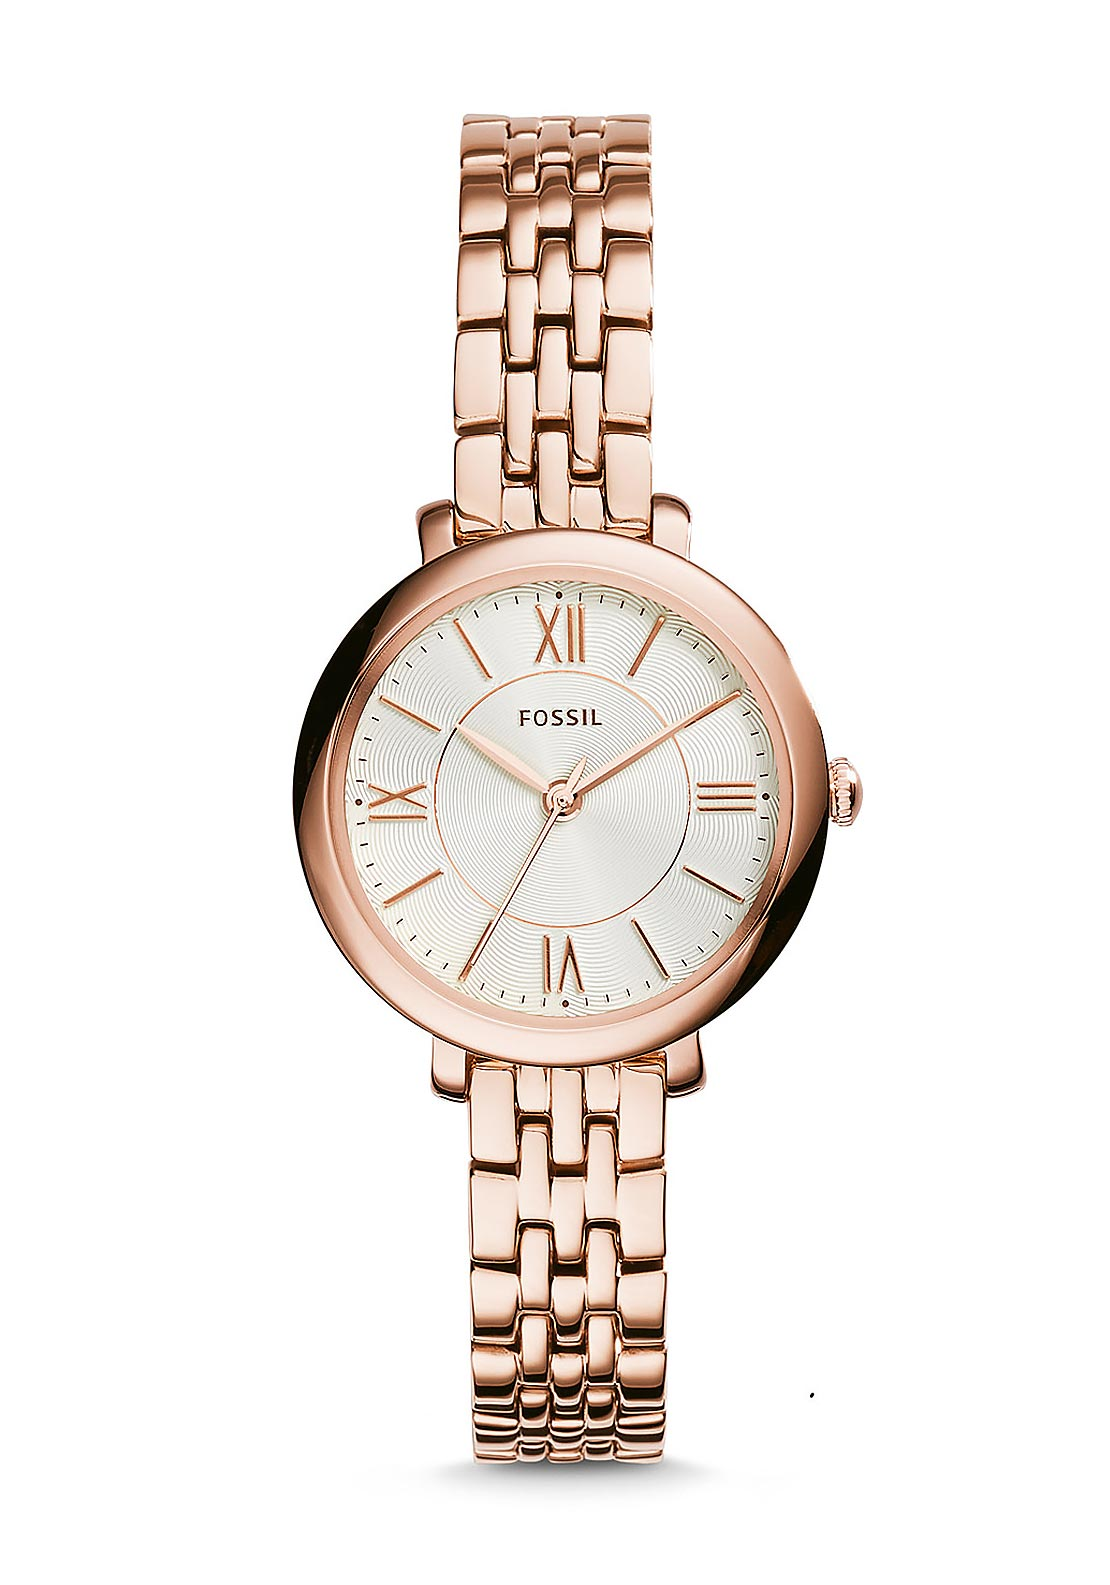 Fossil Womens Jacqueline Mini Watch, Rose Gold & White